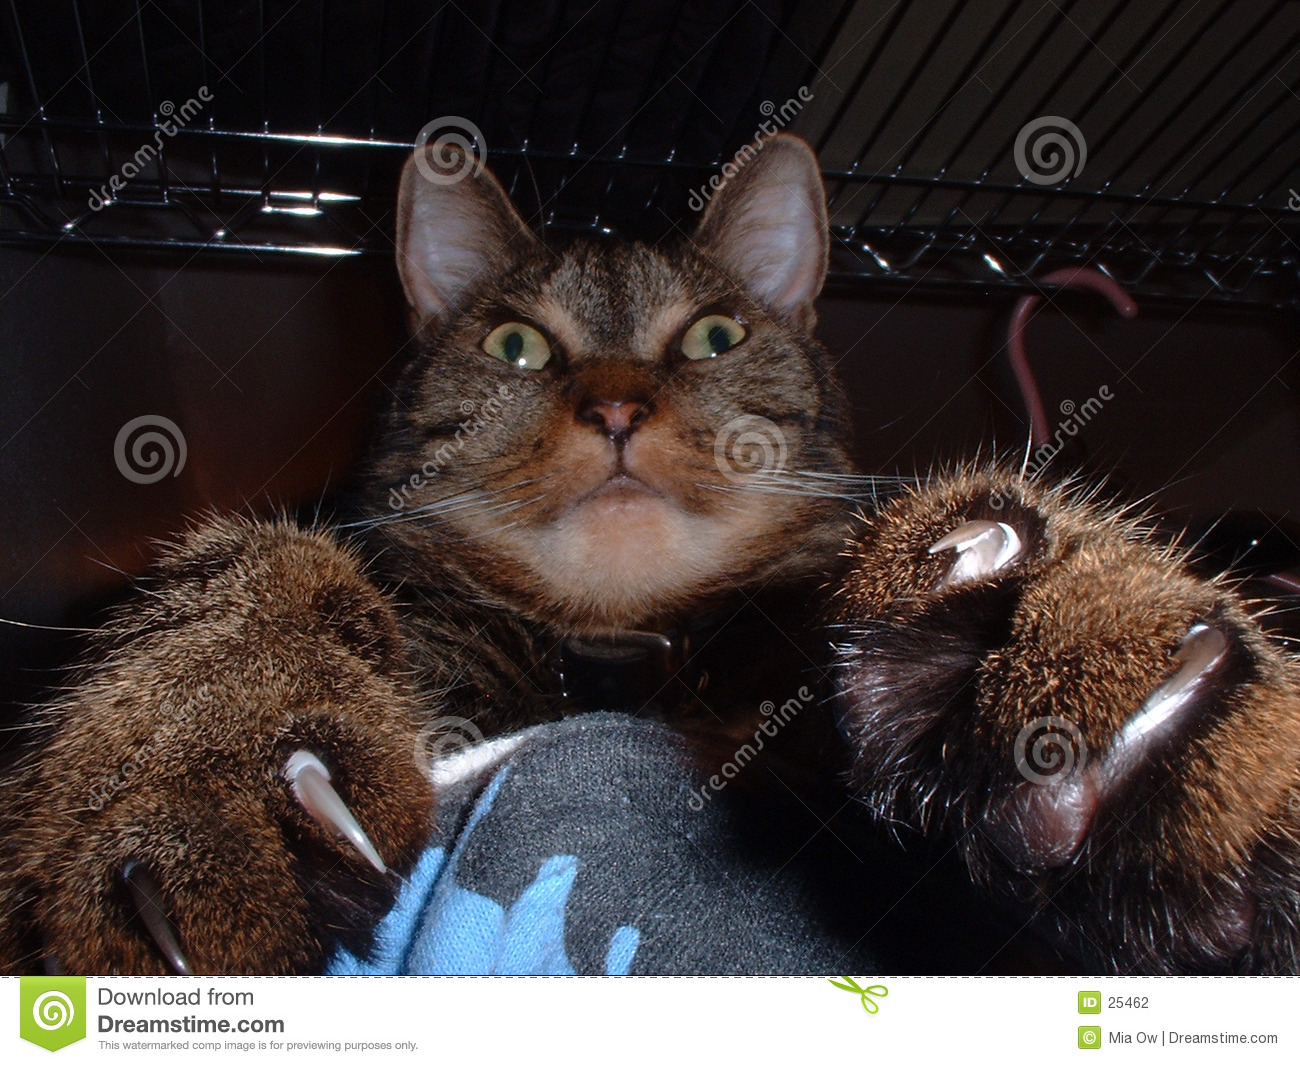 Cat with Claws 1